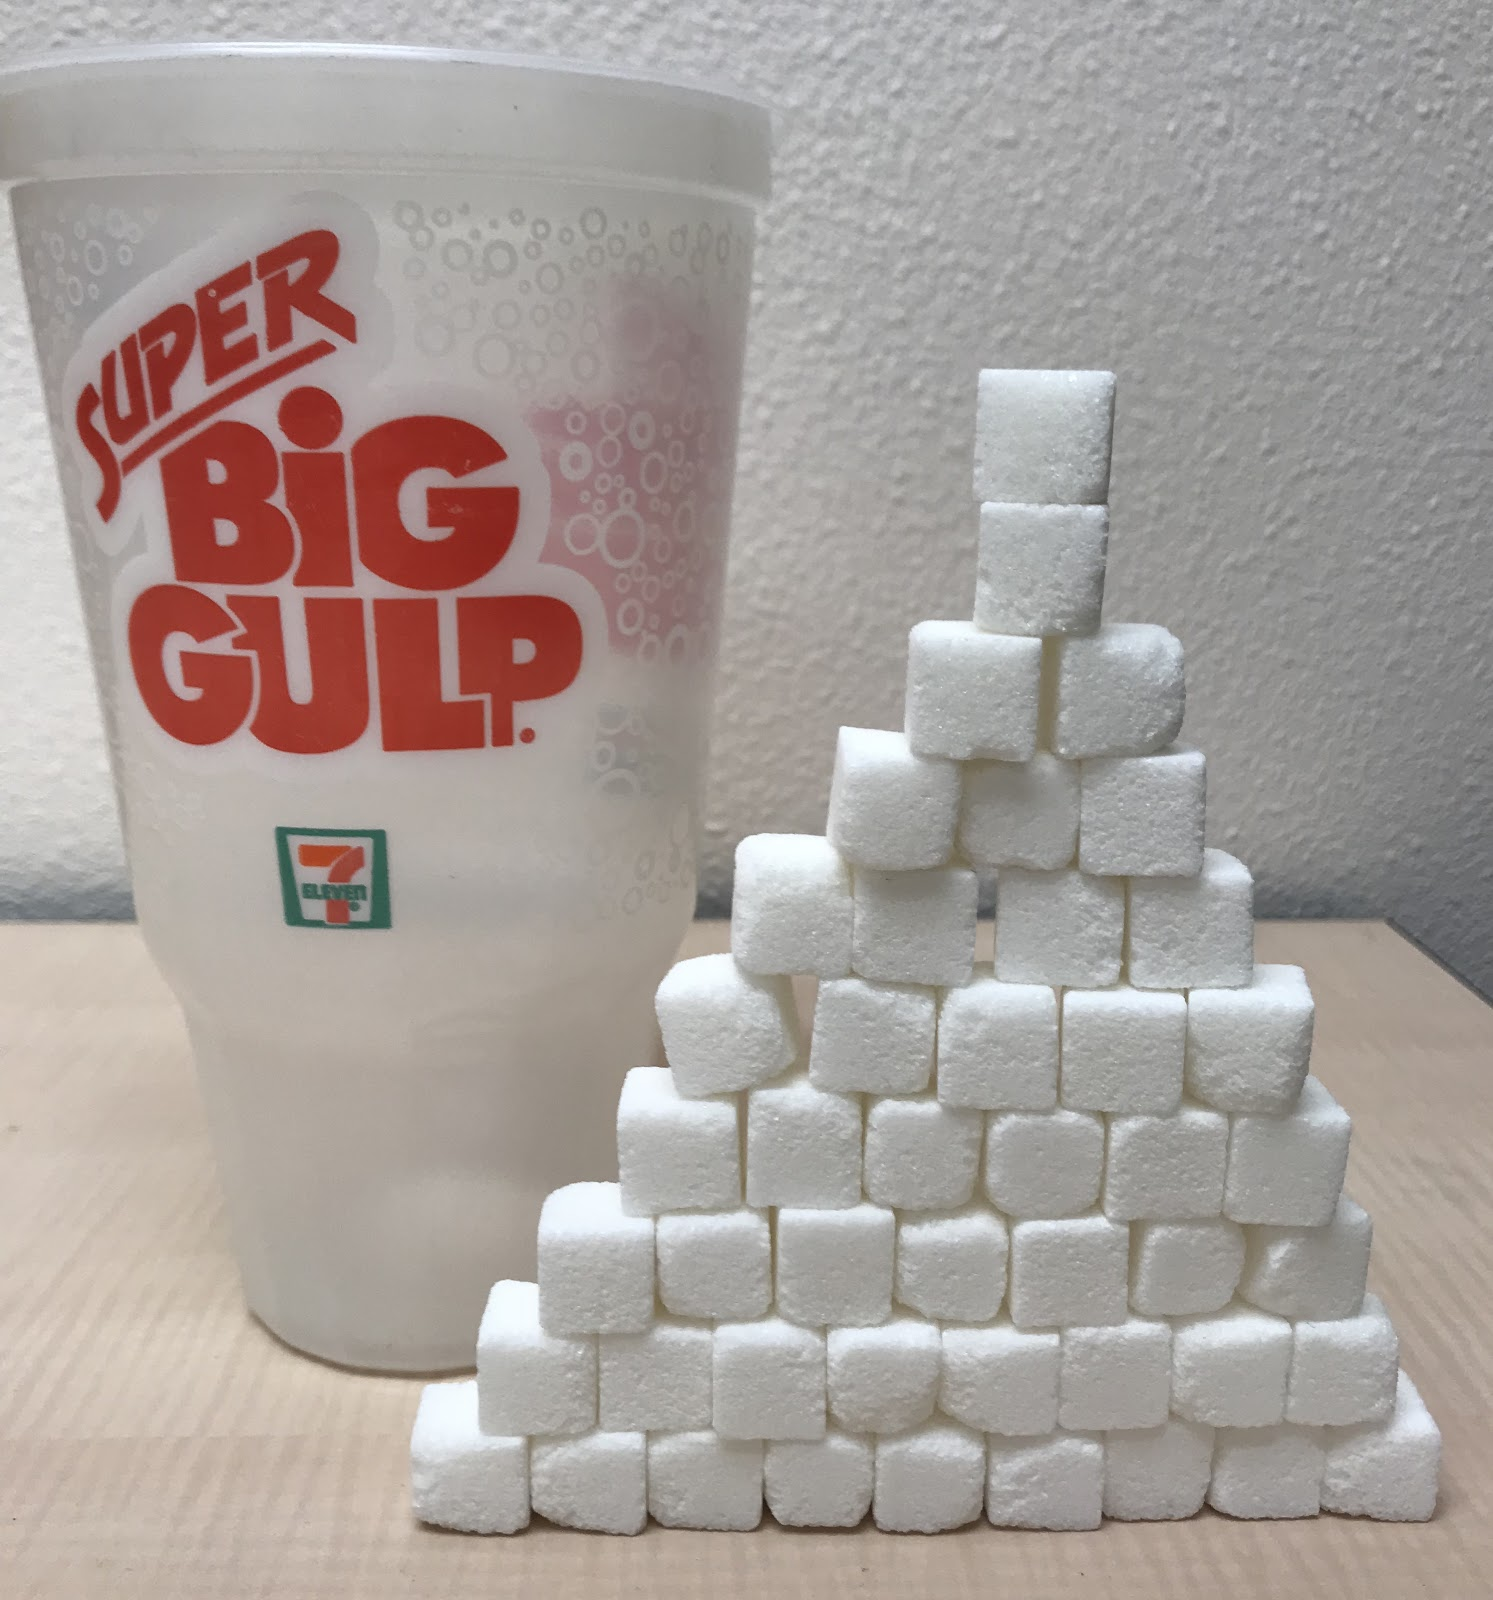 Forty six sugar cubes stacked next to a big gulp to illustrate the 46 teaspoons of sugar that the soda contains.